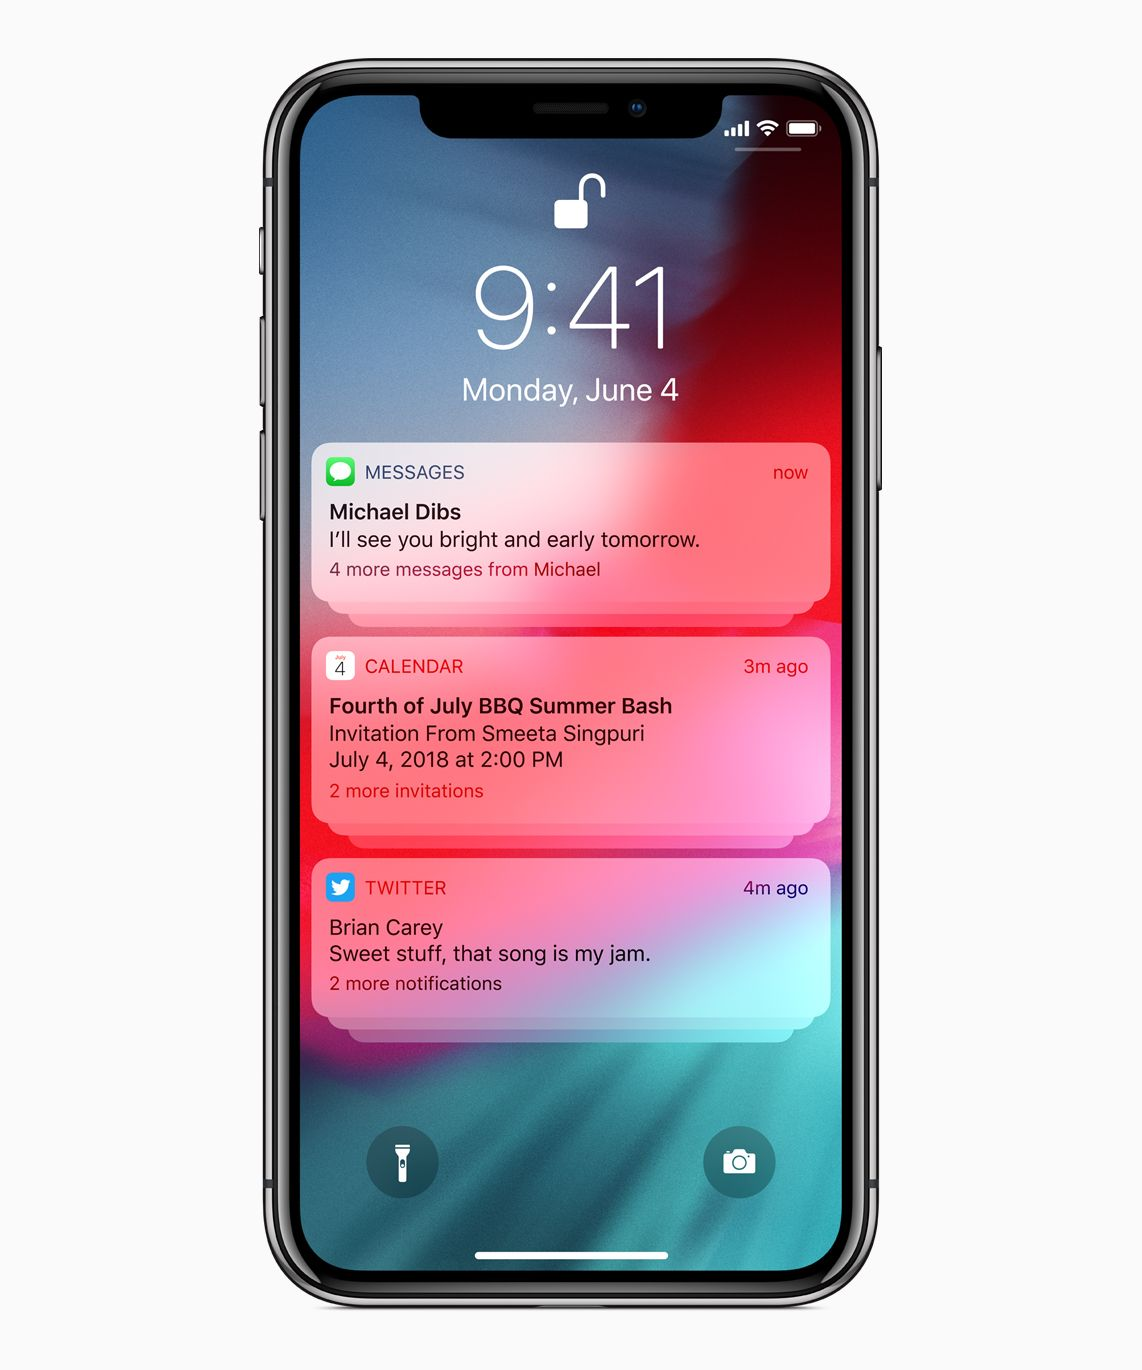 Apple iphone notification settings new update ios12